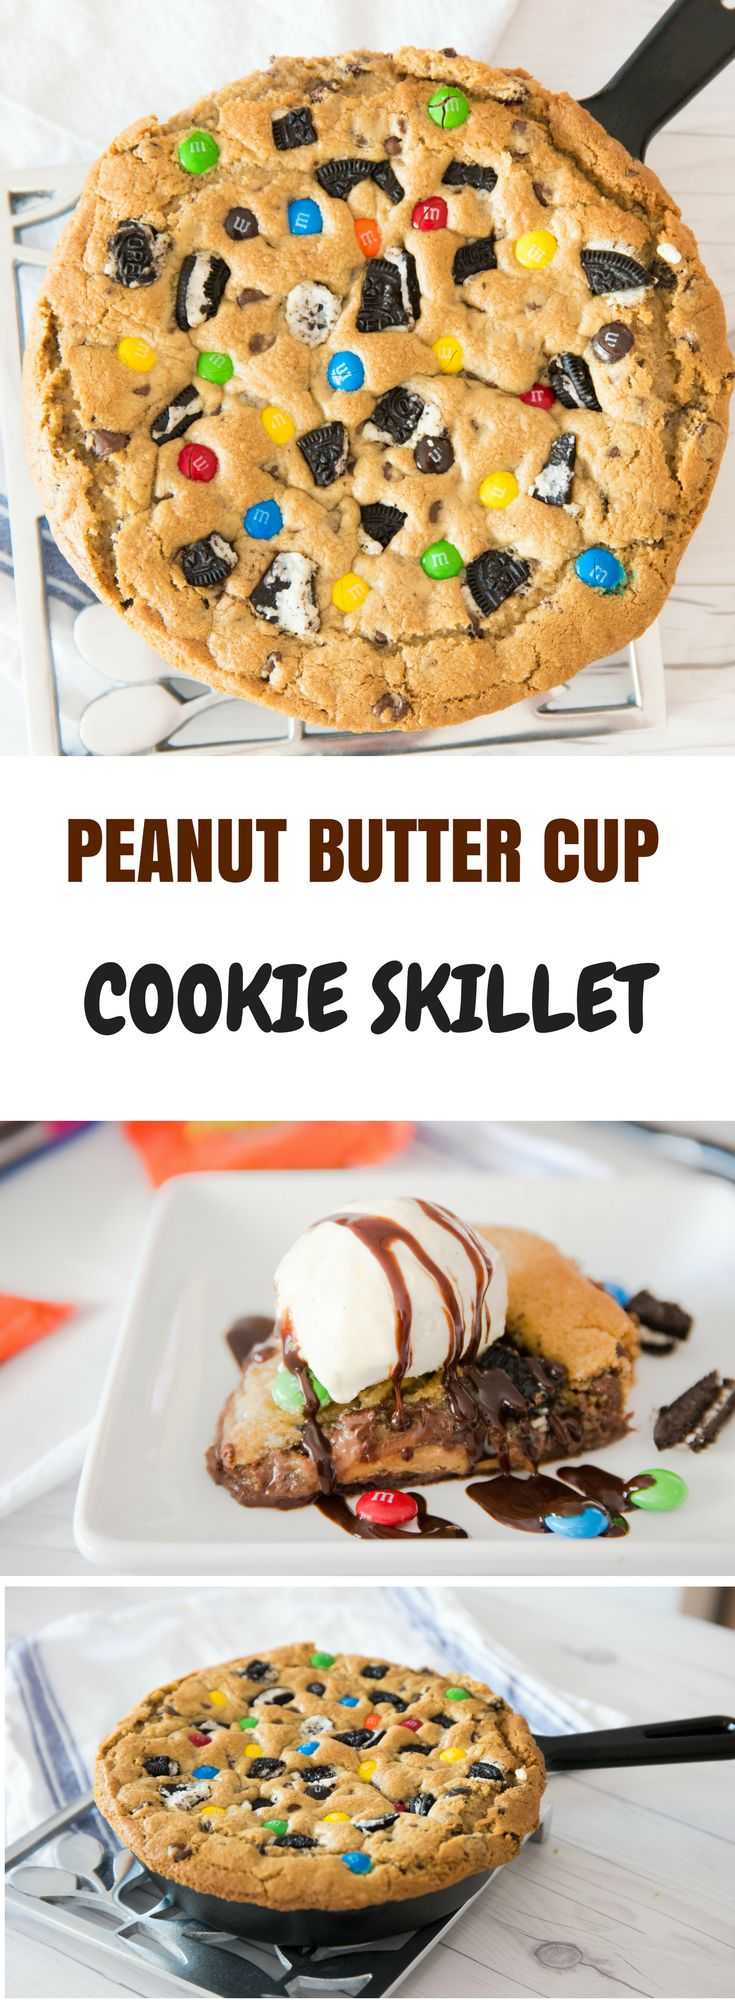 Peanut butter cup cookie skillet recipe is so fun to make with your ...